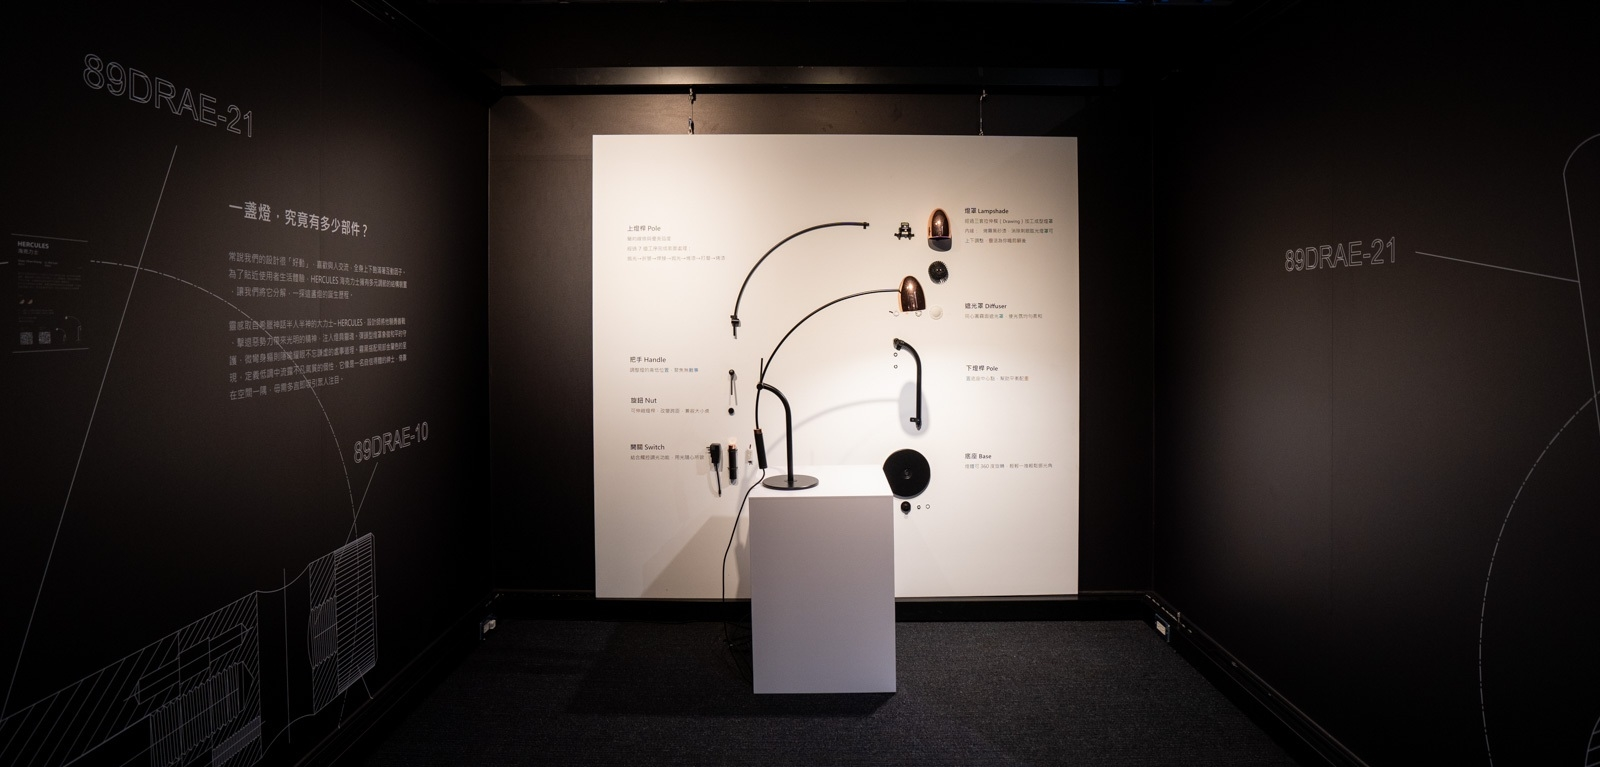 SEED Design Hercules German Design Award 2019 Special Mention